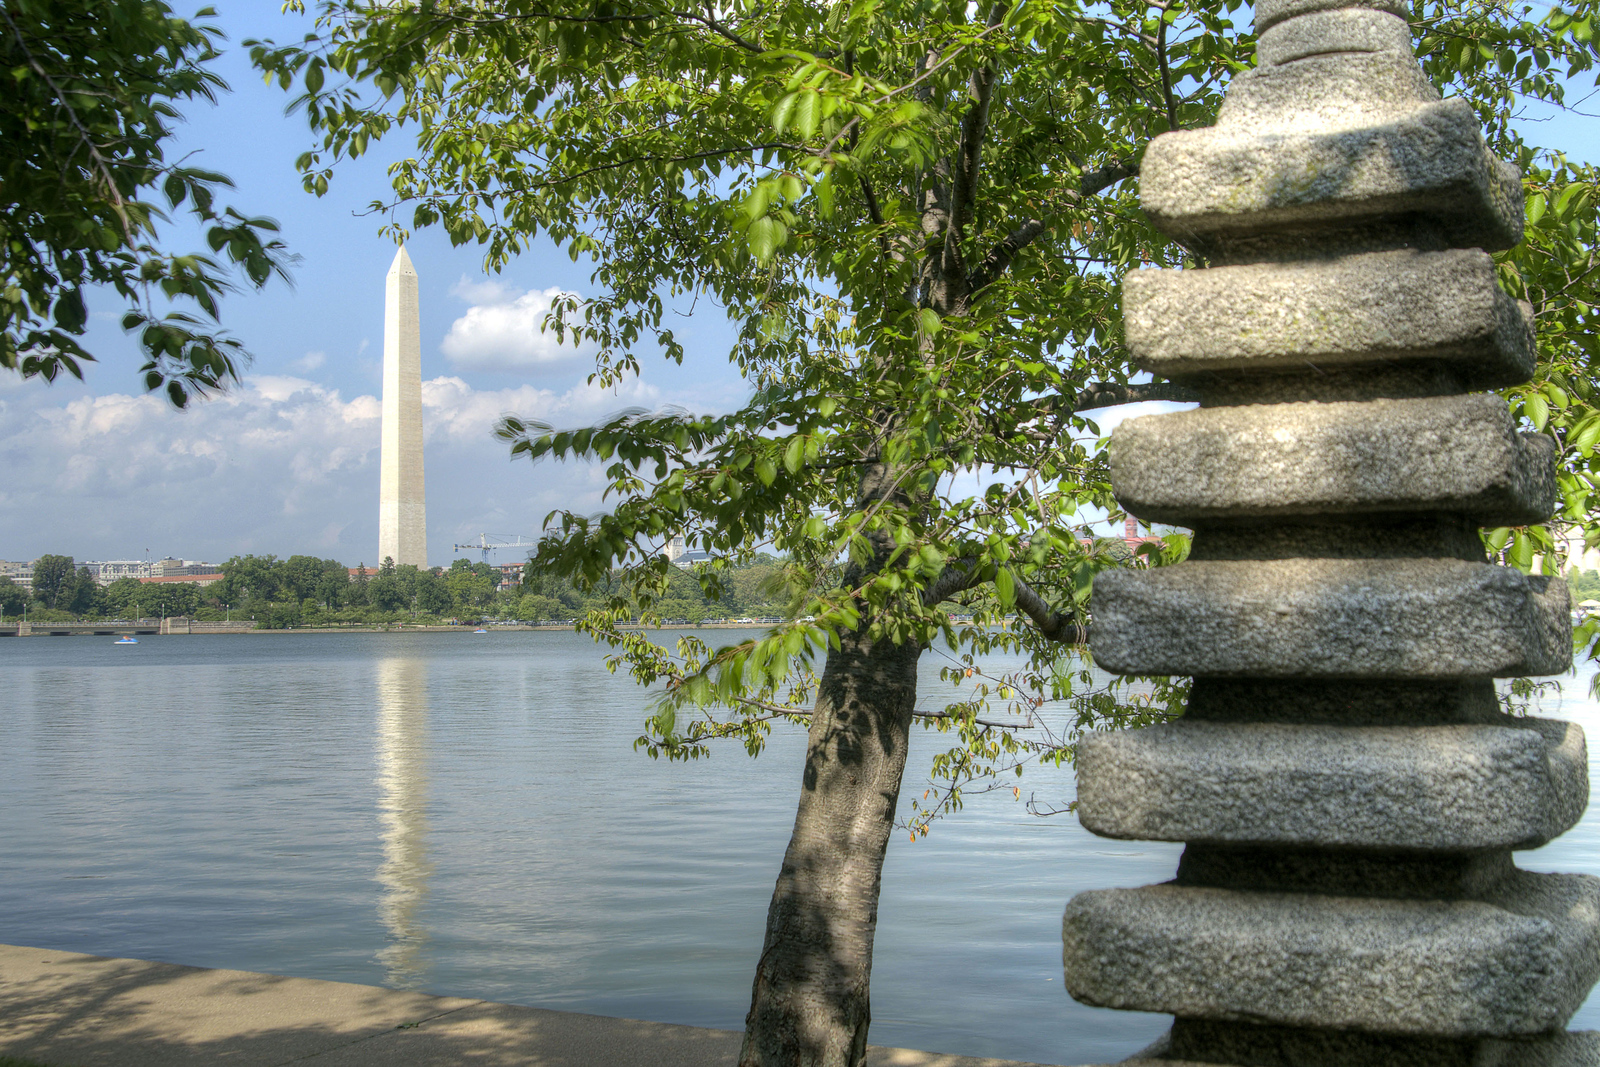 The Washington Monument is seen beyond the Japanese Stone Pagoda on a trail around the Tidal Basin in Washington, DC, on Sunday, August 17, 2014. Copyright 2014 Jason Barnette